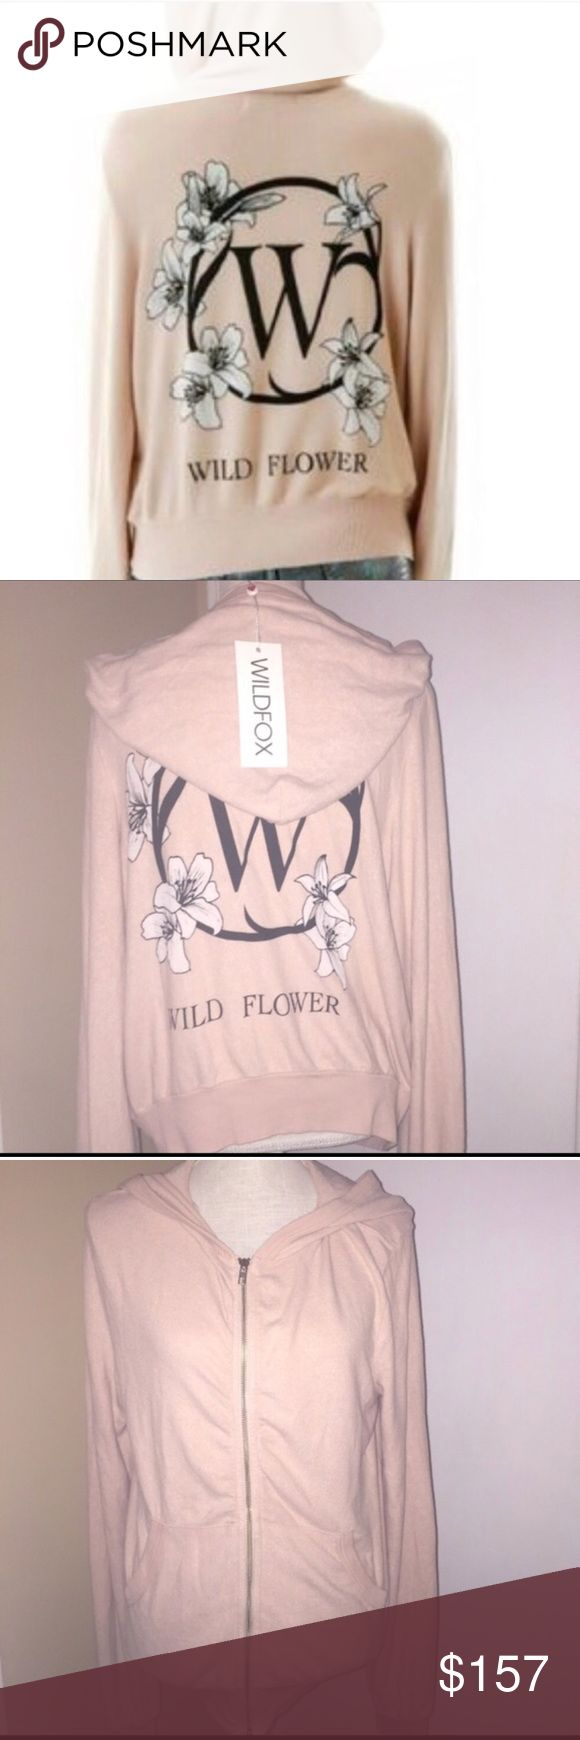 🆕 Wildfox 'Wild Flower' Malibu Zip-up hoodie M NWT Wildfox Couture Malibu Zip-up hoodie with a 'W' and floral design on the back and 'Wild Flower' written underneath. Very pretty neutral color. Size Medium. This is the same material as the very soft baggy beach jumpers. Please view all photos and ask any questions you may have prior to purchasing 💞  ❌No Trades❌    ⭐️Bundle and Save⭐️ Wildfox Couture Tops Sweatshirts & Hoodies